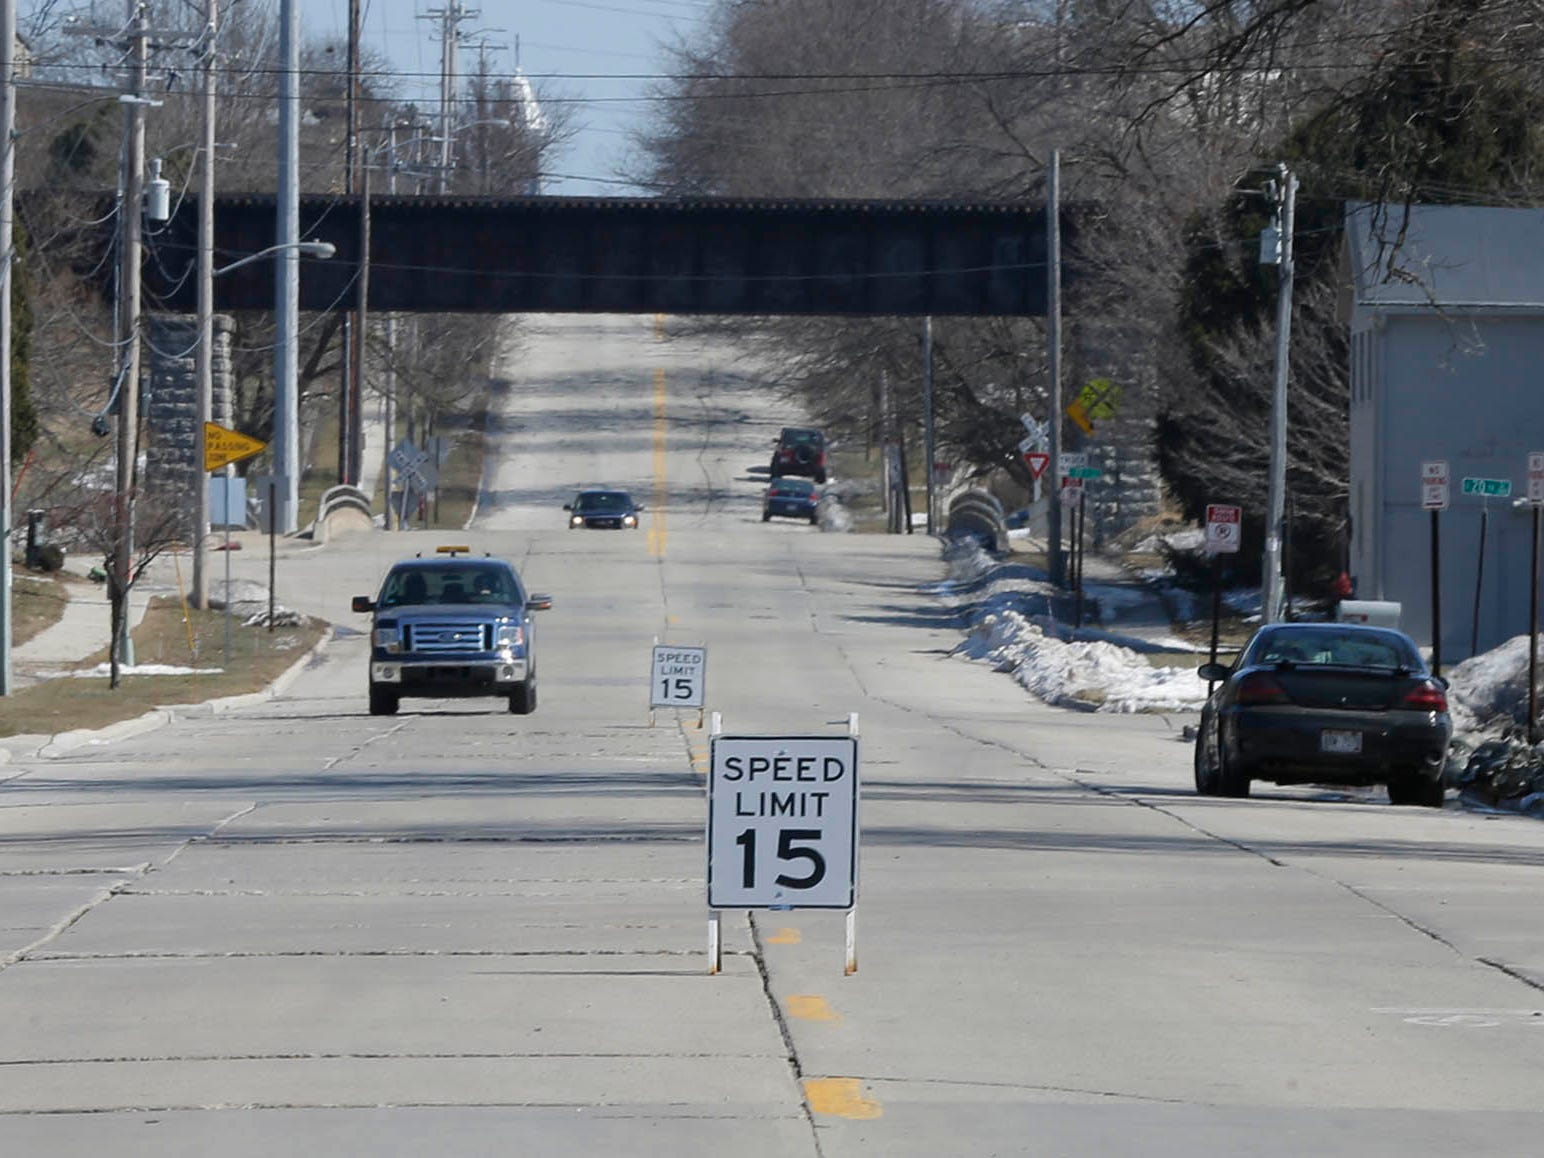 Reduced speed limit signs are up near the flooding along New Jersey Avenue, Tuesday, March 19, 2019, in Sheboygan, Wis.